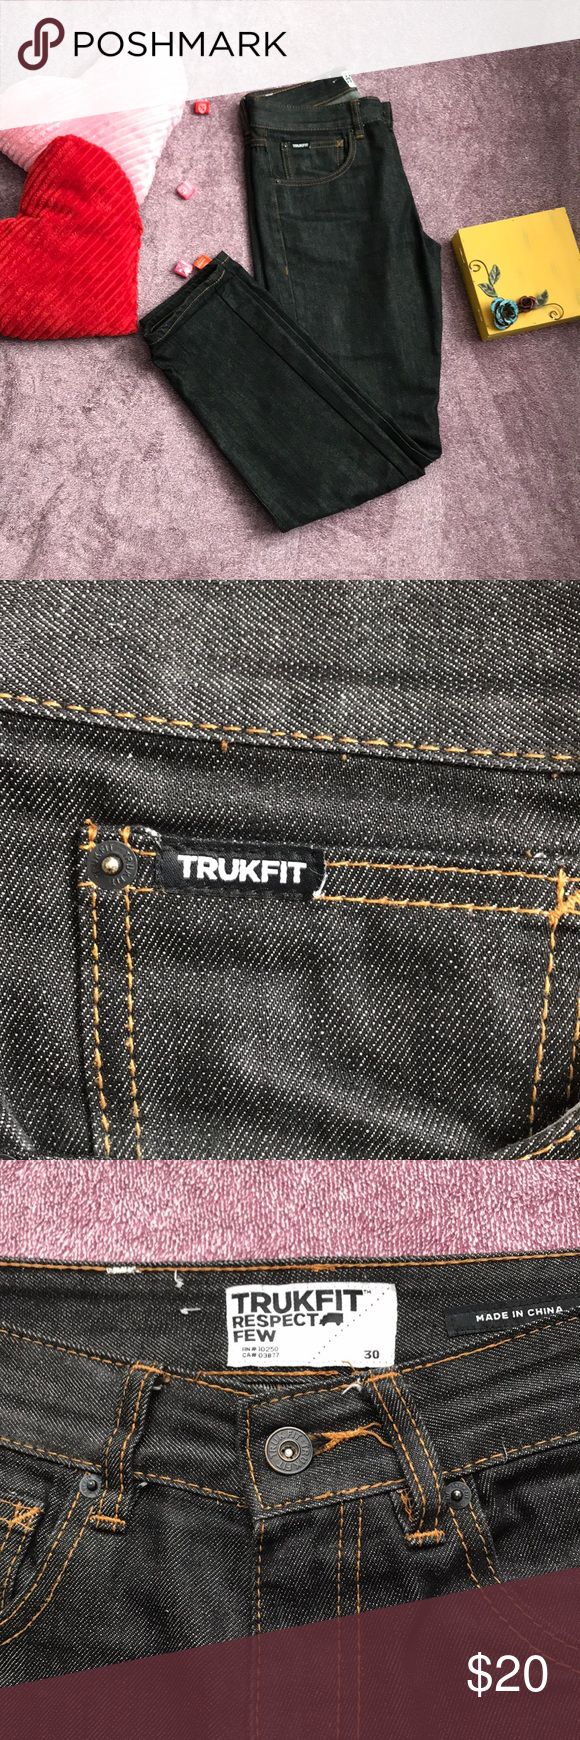 Men's TruckFit Jeans Worn Once Great condition  No flaws Dark denim Lil Wayne's Brand truckfit Jeans Slim Straight